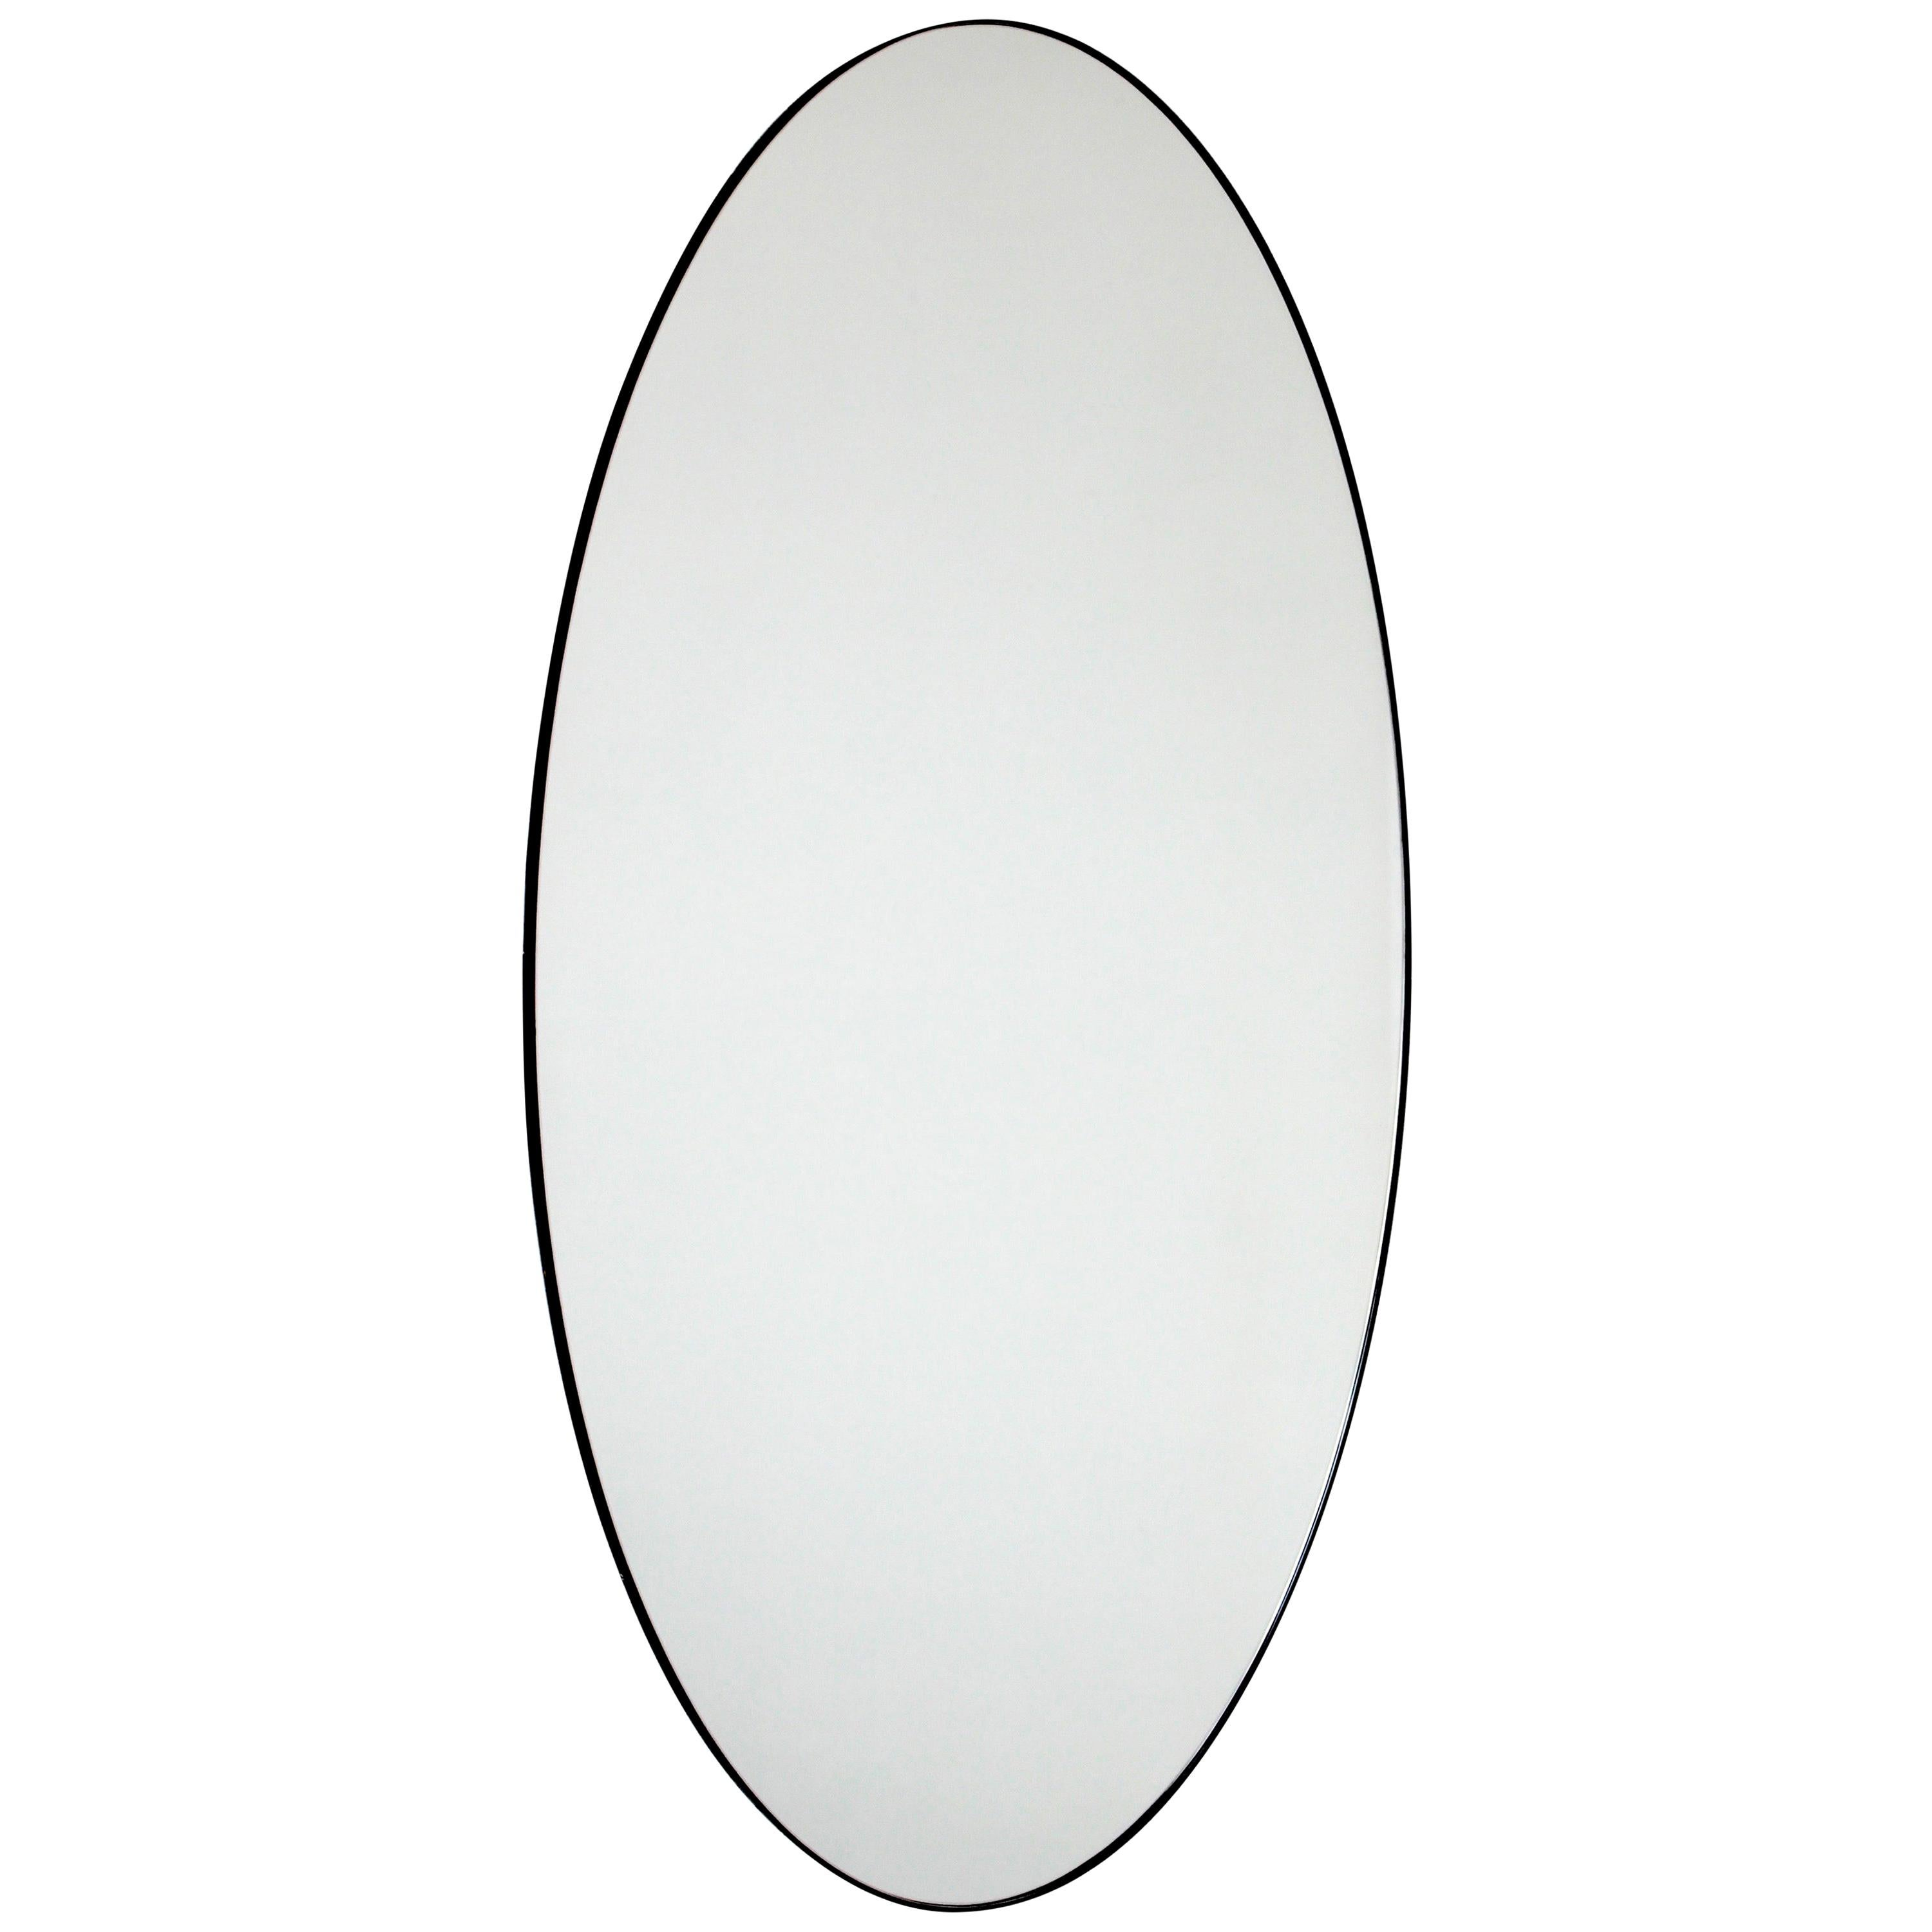 Ovalis™ Oval Contemporary Bespoke Mirror with Black Frame, Extra Large